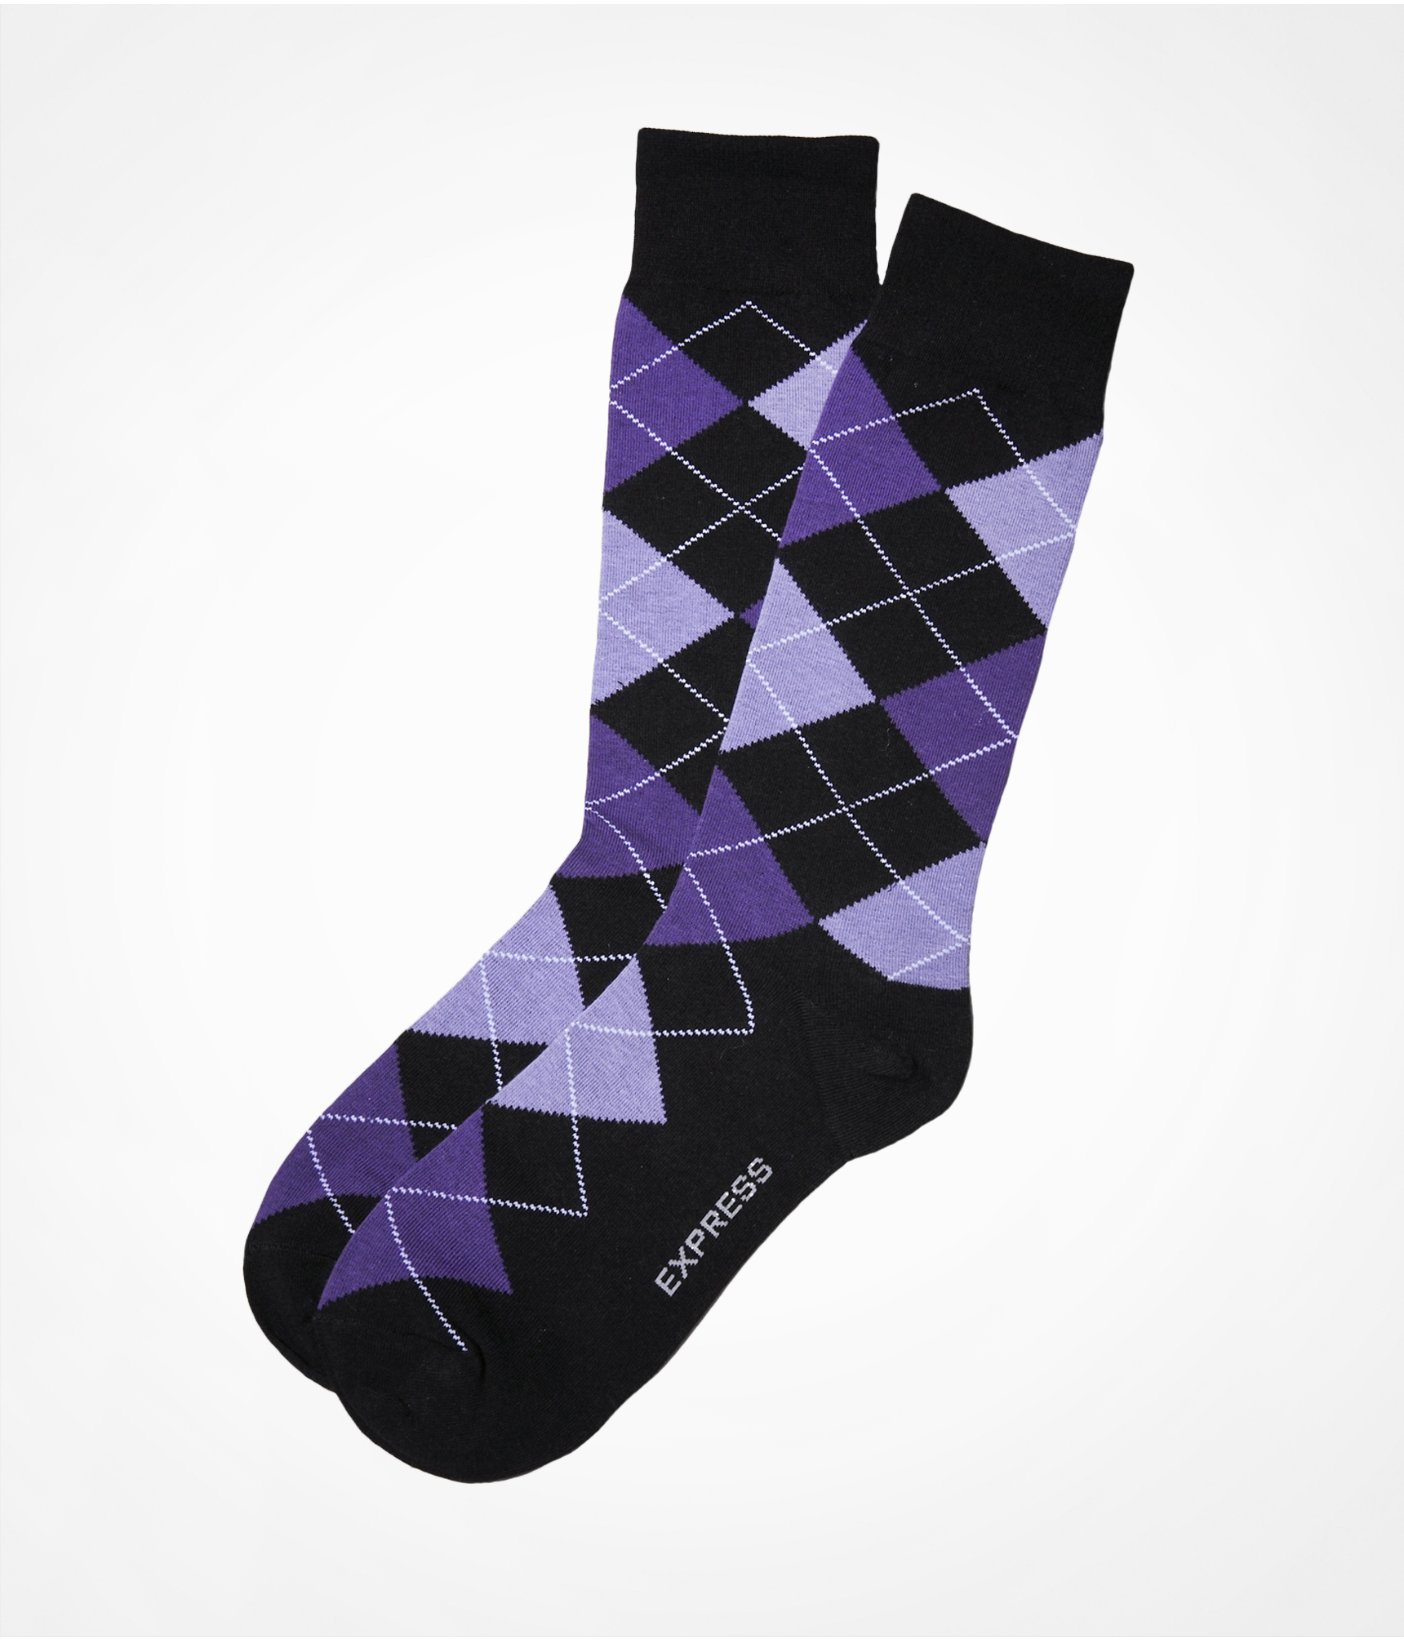 Costumes & Dress Up Party Ideas & Recipes. Dress Socks. Showing 15 of 15 results that match your query. Search Product Result. Product - Women's Trouser Socks, Mesh Ladder Rib, 3pk Product - Boys Crew Argyle Socks, Pack 3. Product Image. Price $ 3. Product Title. Boys Crew Argyle Socks, Pack 3. See Details.